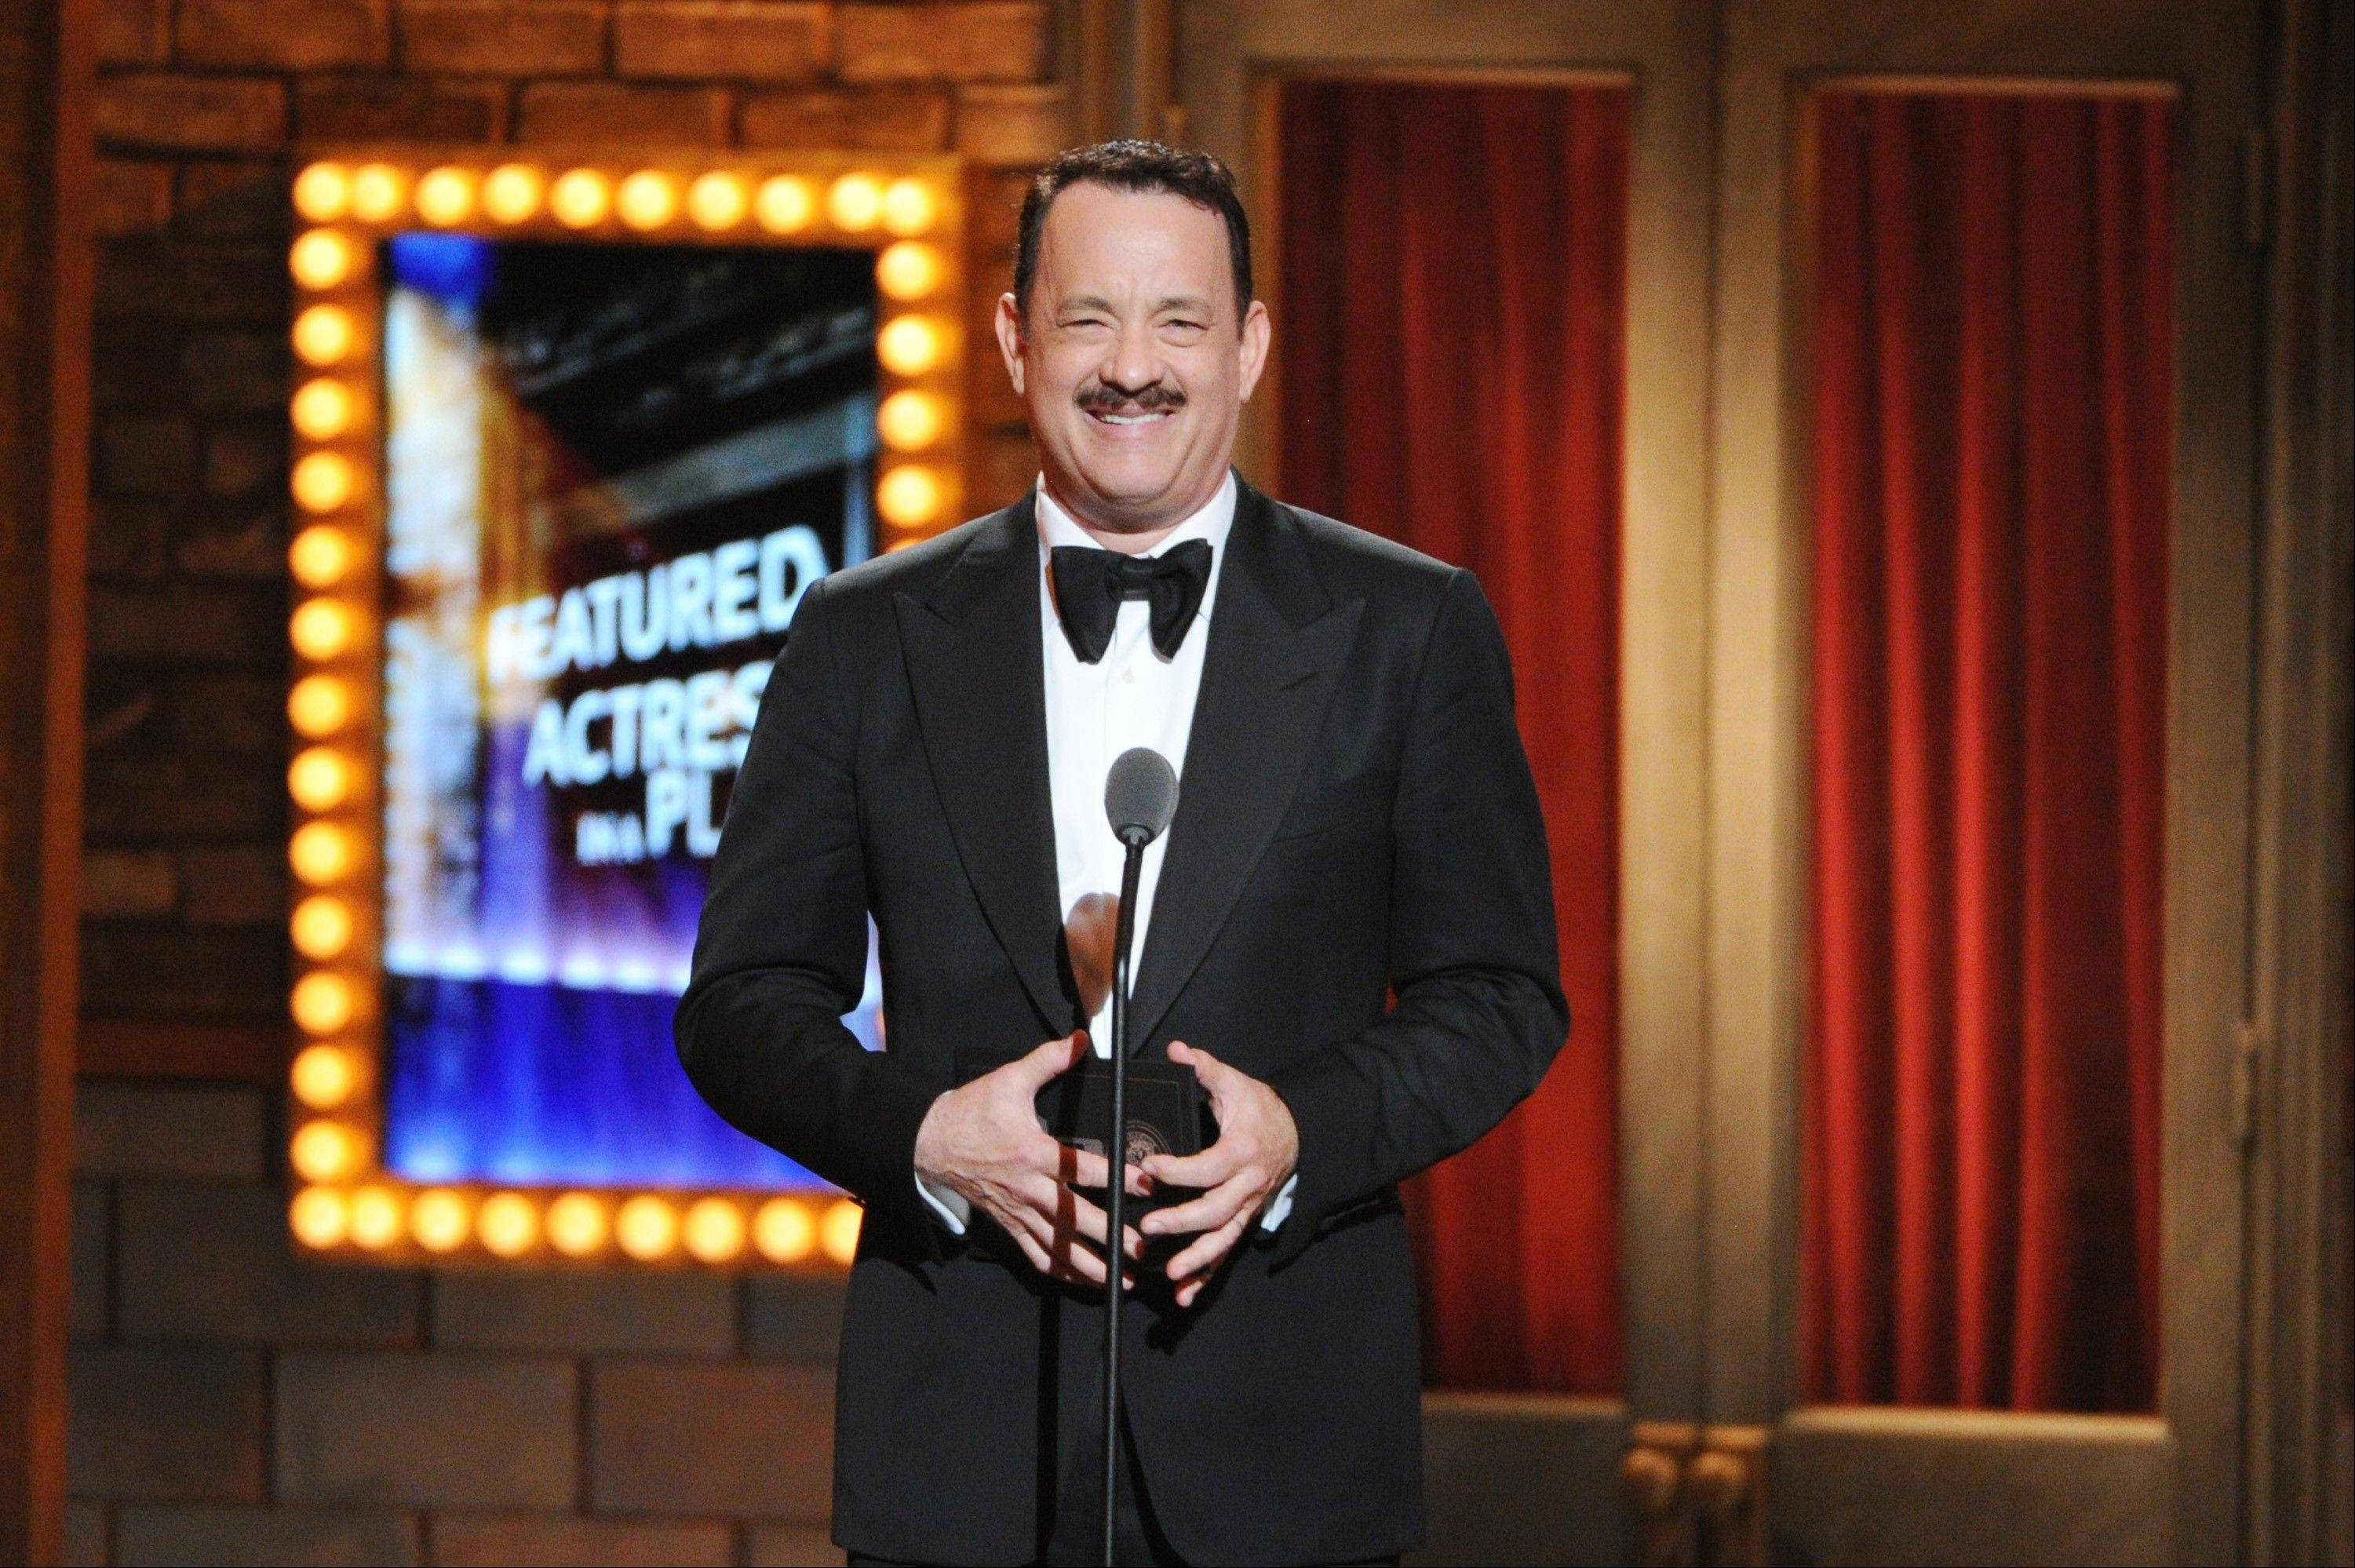 """Lucky Guy"" actor Tom Hanks presents the Best Performance by an Actress in a Featured Role in a Play award at the 67th Annual Tony Awards, on Sunday, June 9, 2013 in New York."